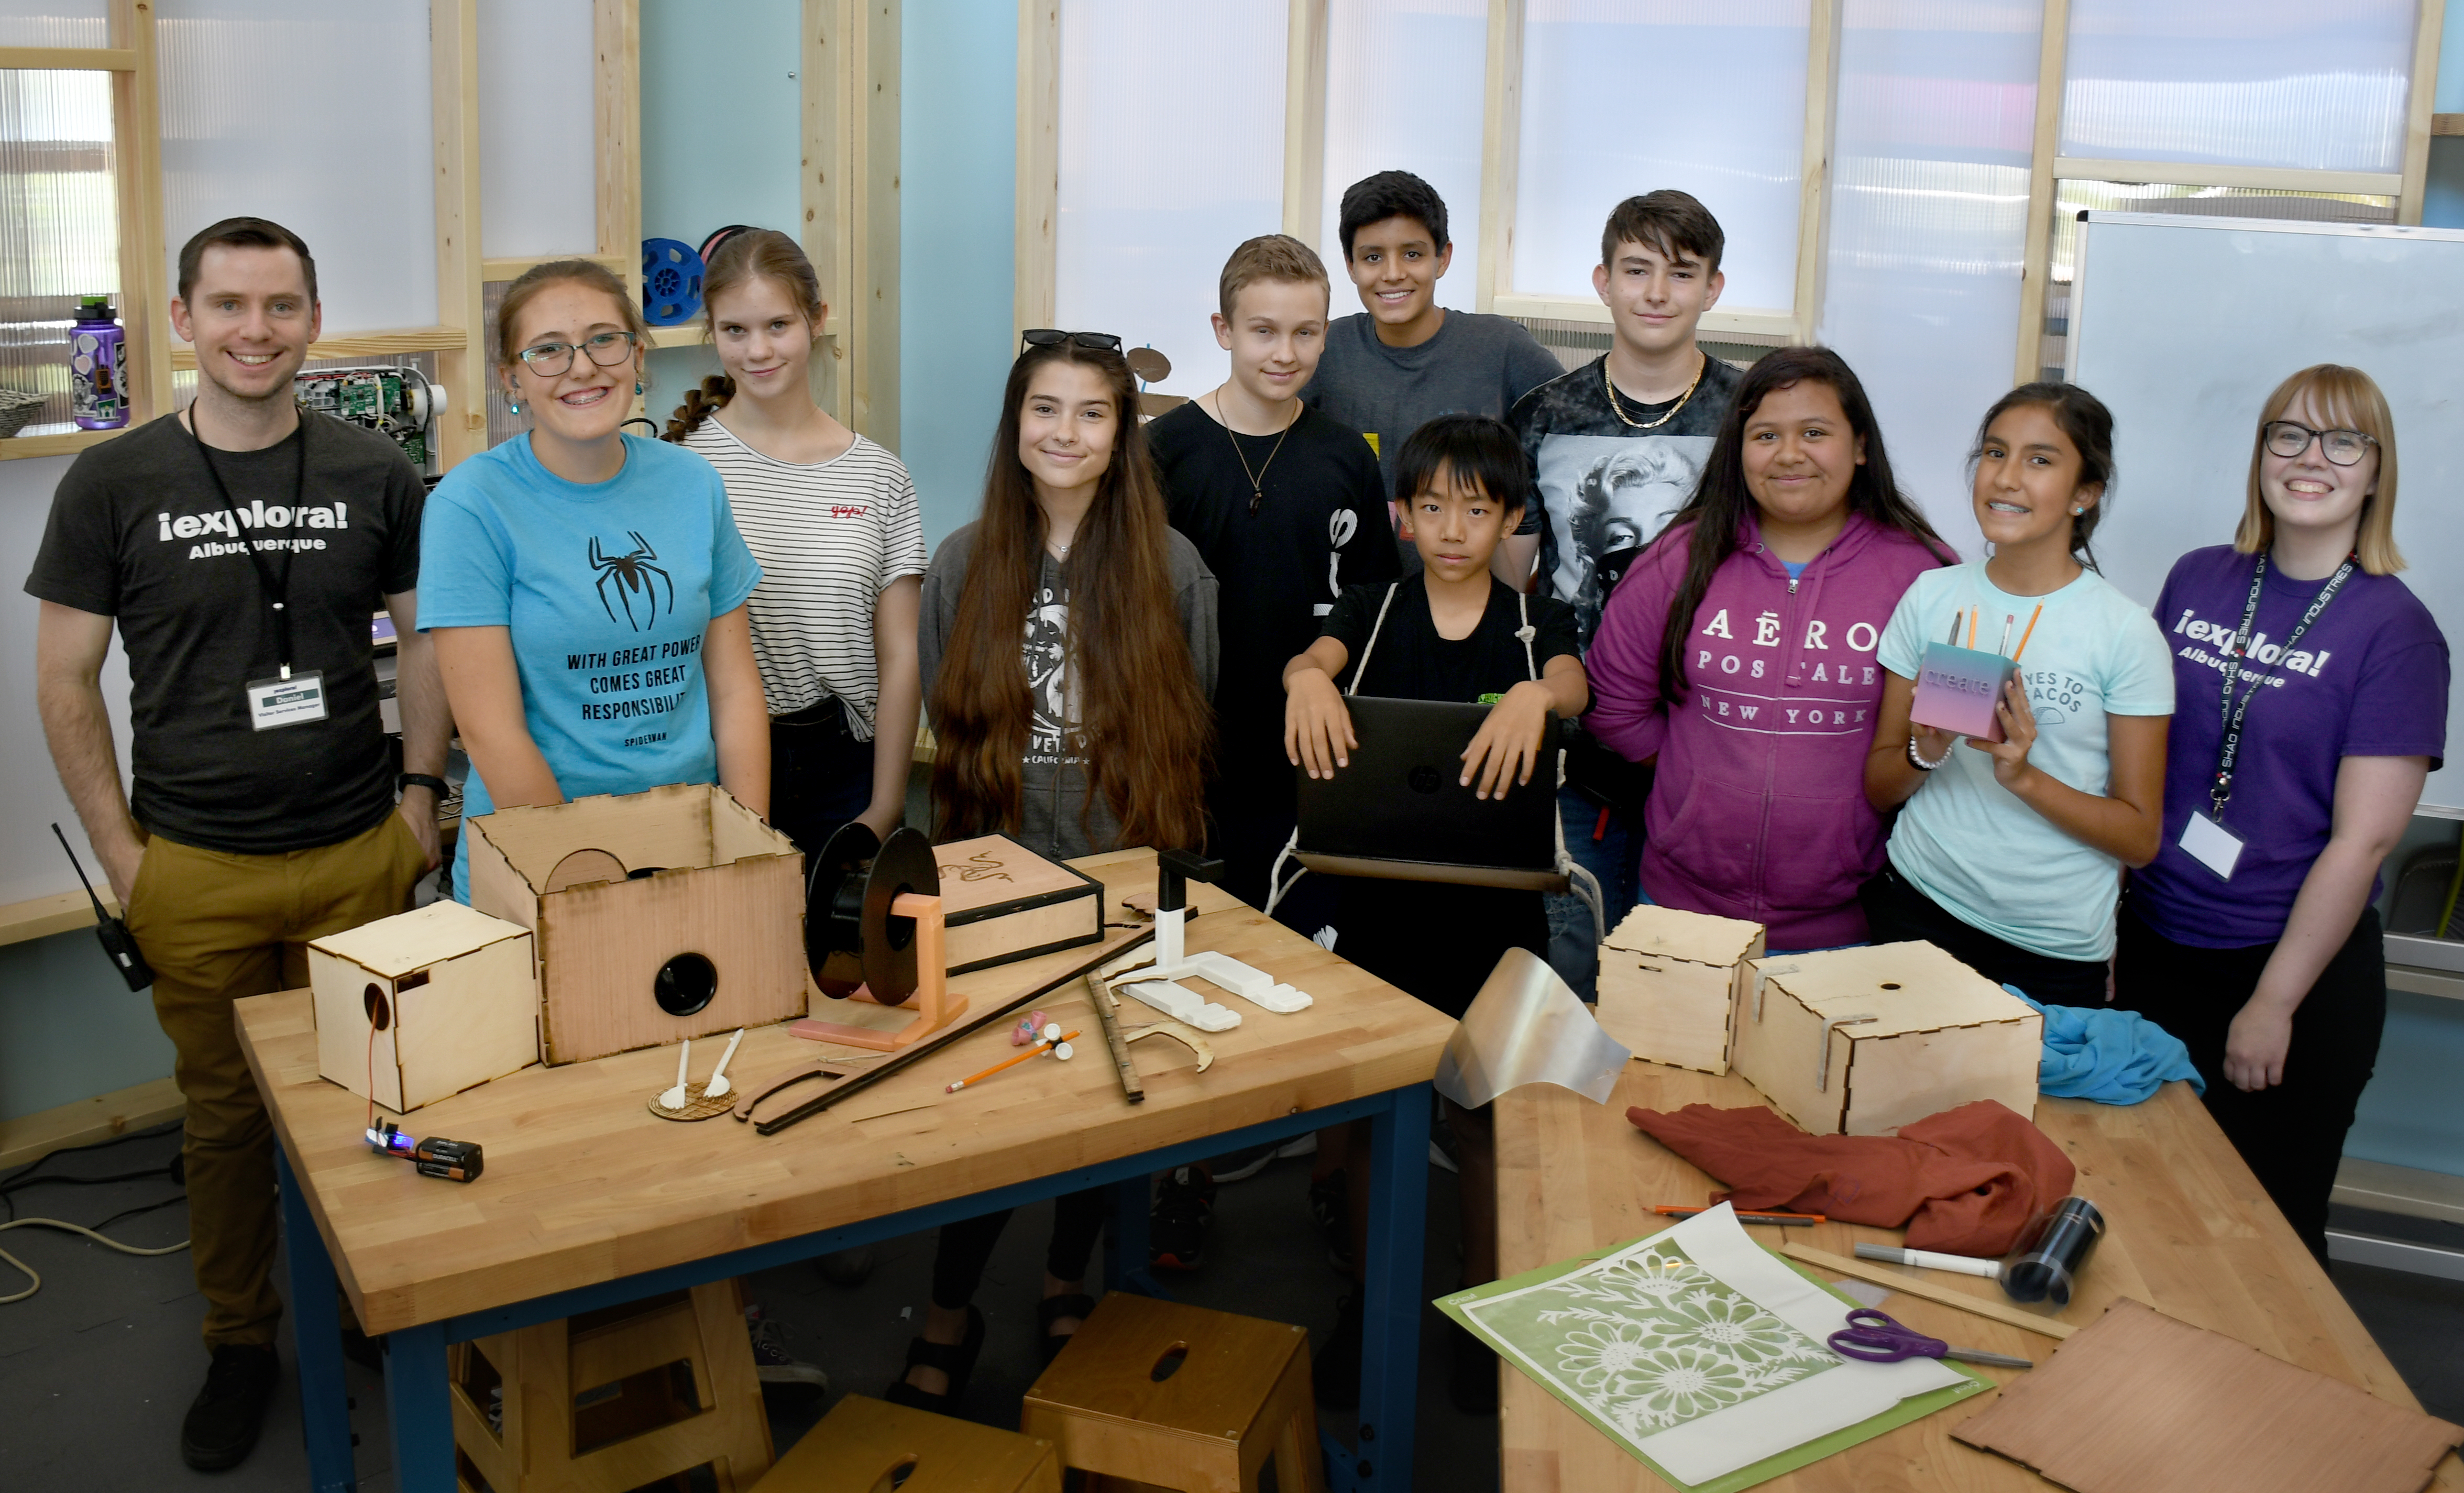 A group shot of several middle-school students proudly showing off their laser-cut woodworking projects.